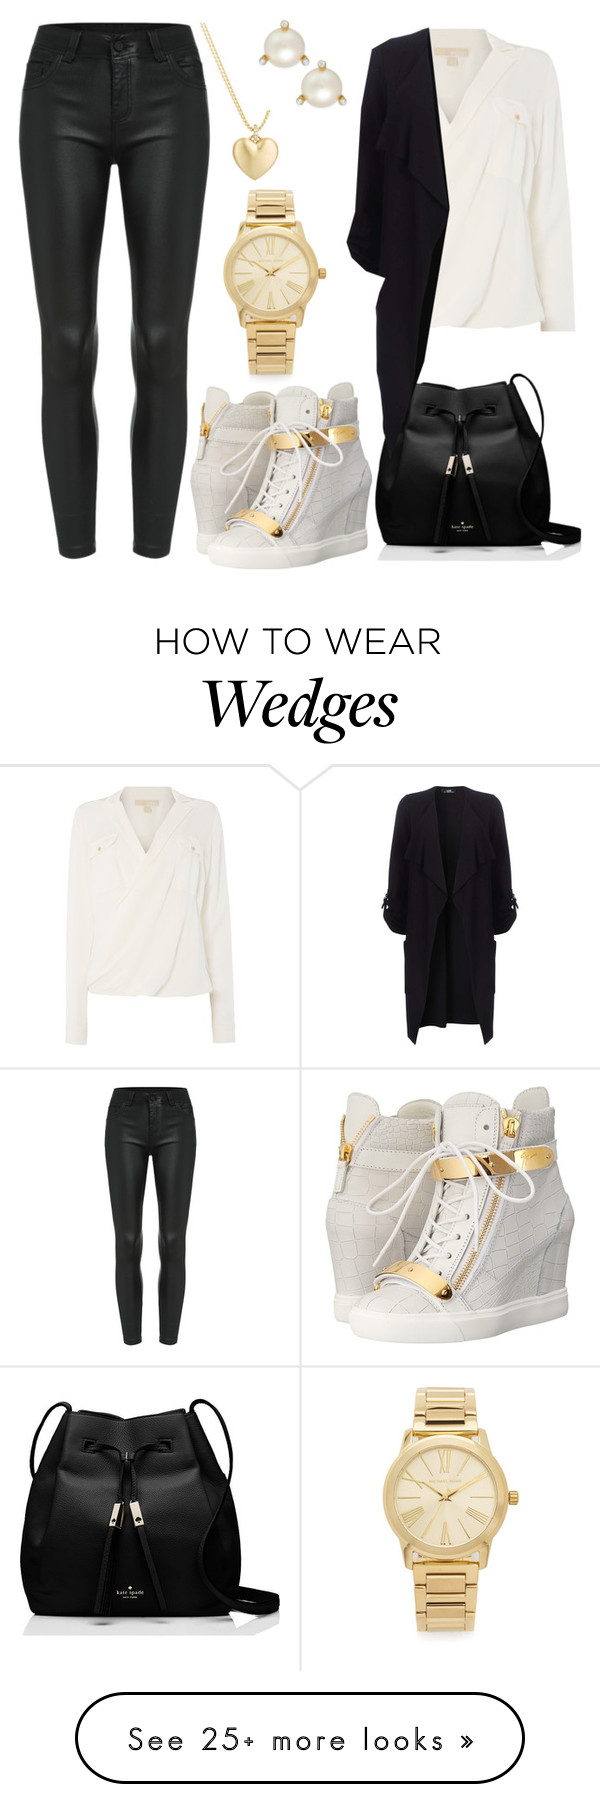 """~127\\127~"" by taytay-55 on Polyvore featuring Finn, Michael Kors, Giuseppe Zanotti and Kate Spade"